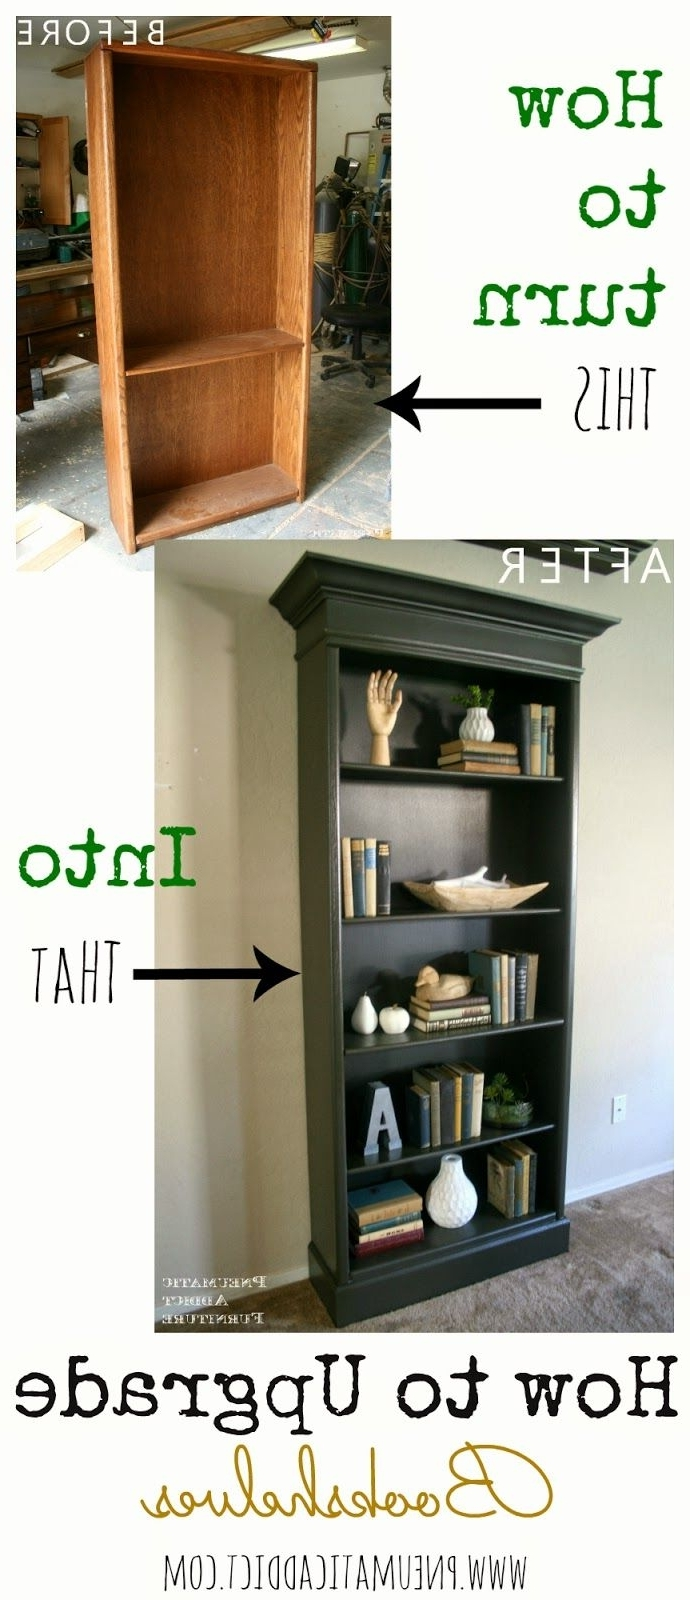 Famous Painted Oak Bookcases With Regard To How To Upgrade An Ugly Oak Bookshelf To Look Like A Pottery Barn (View 6 of 15)